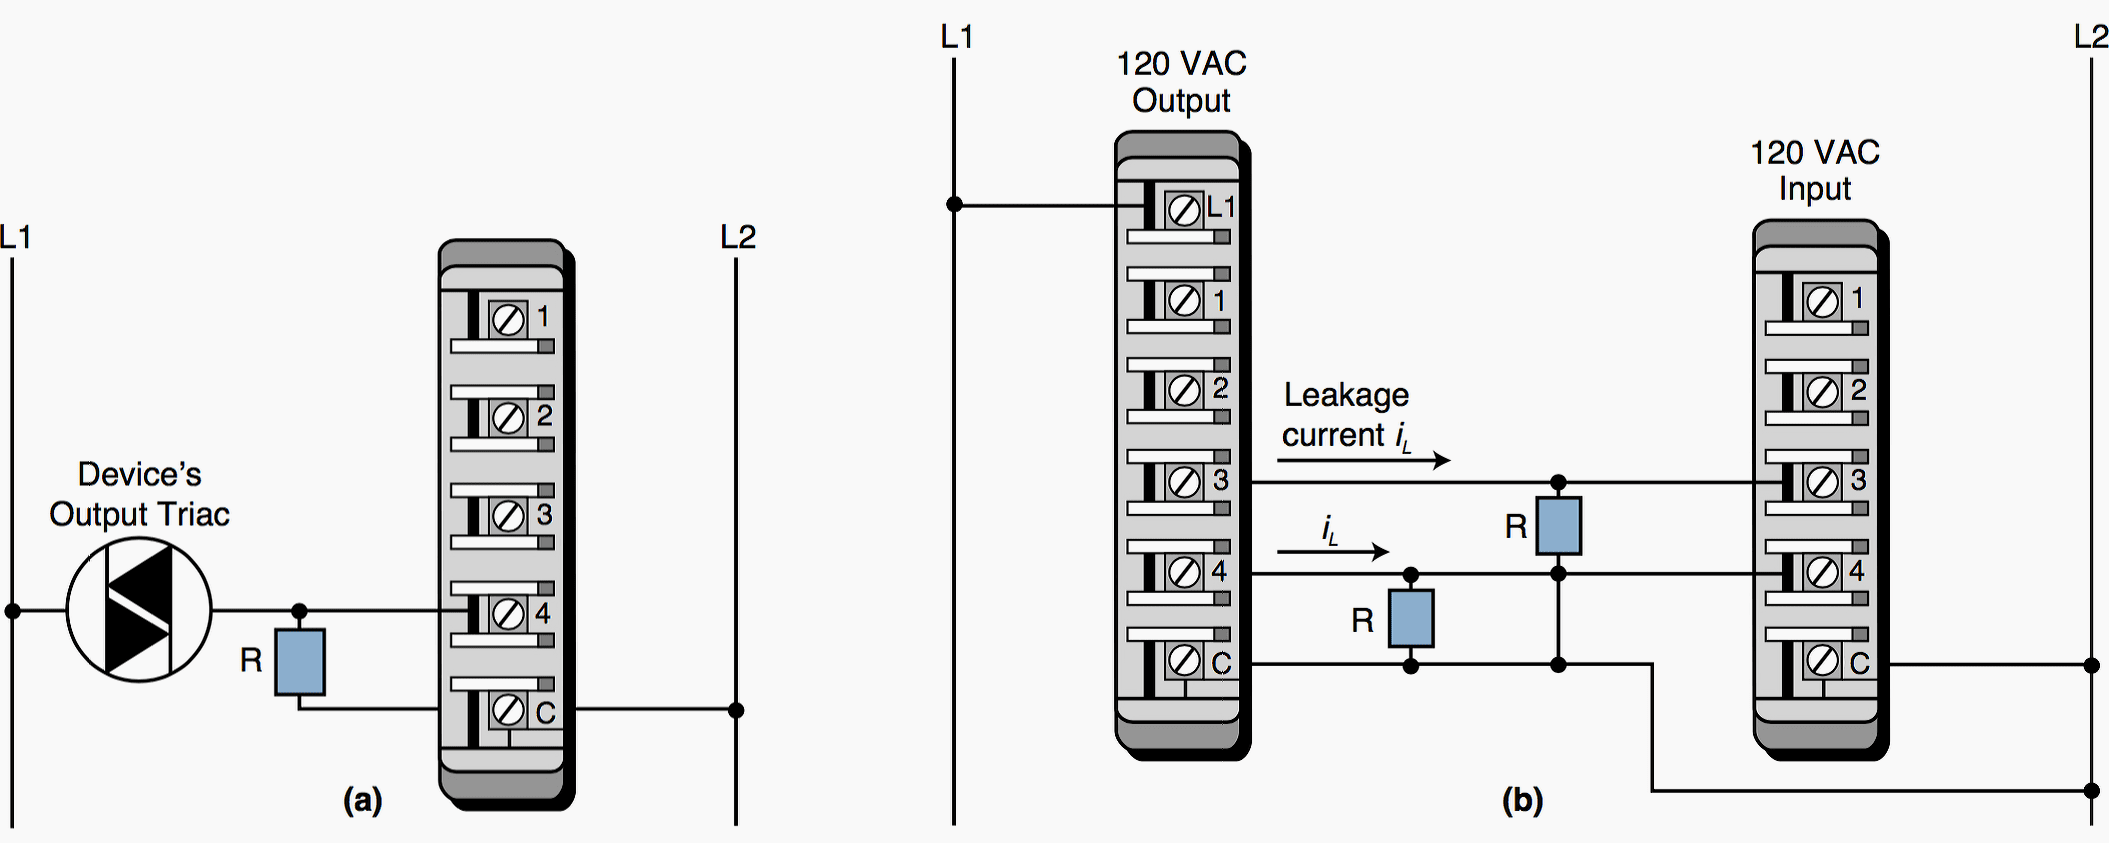 Guidelines For Plc Installation Wiring And Connection